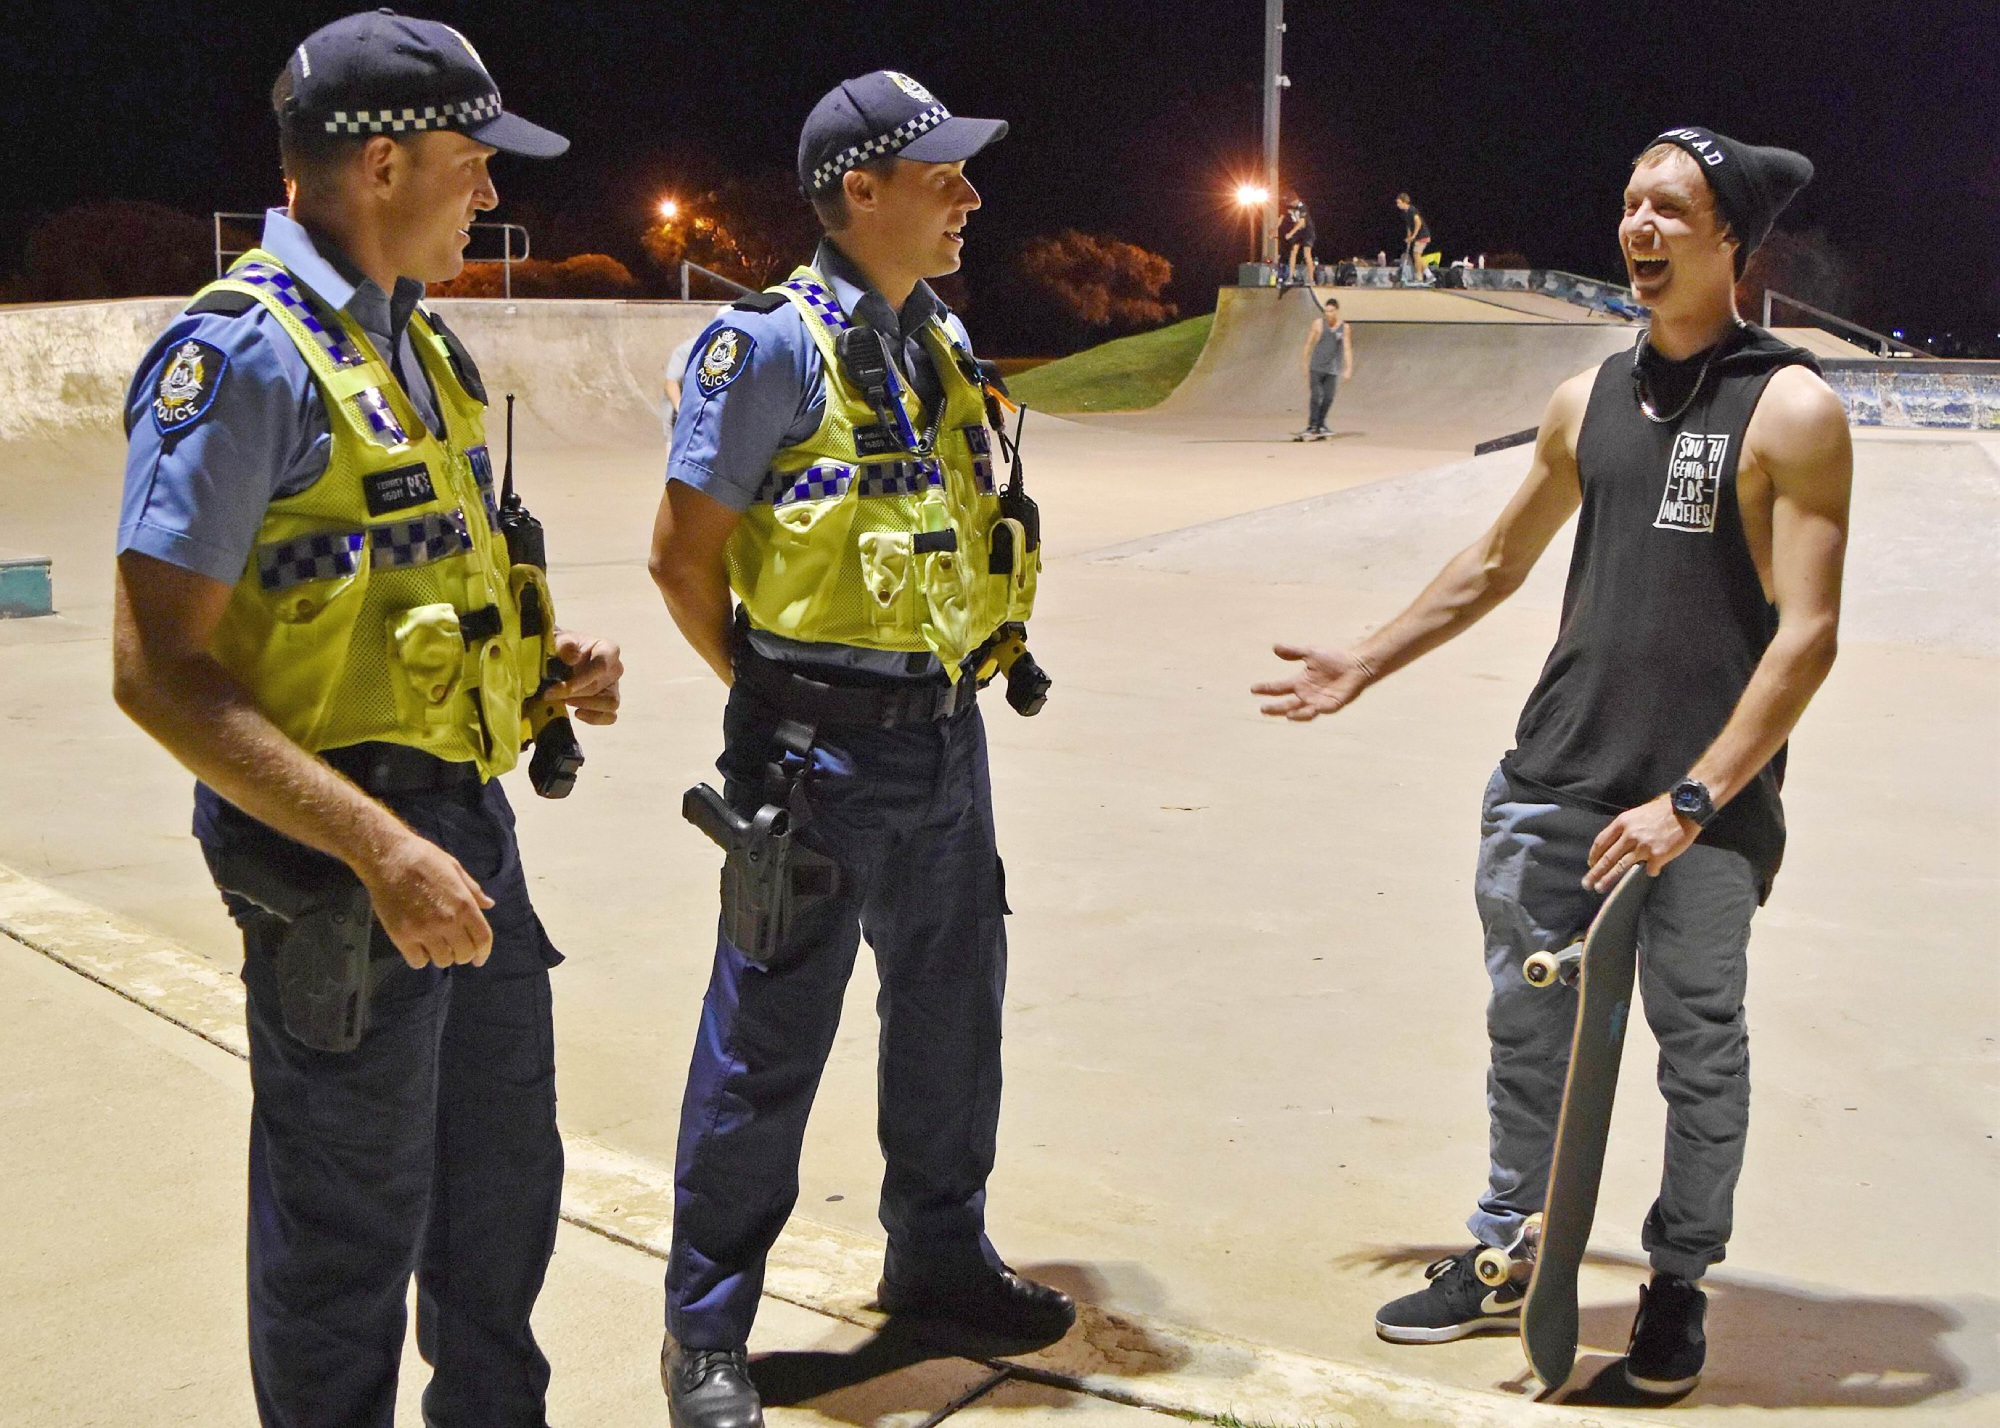 Officer Brad Terrey, Officer Rob Hubbard and local skater Koby Atkinson share a laugh.